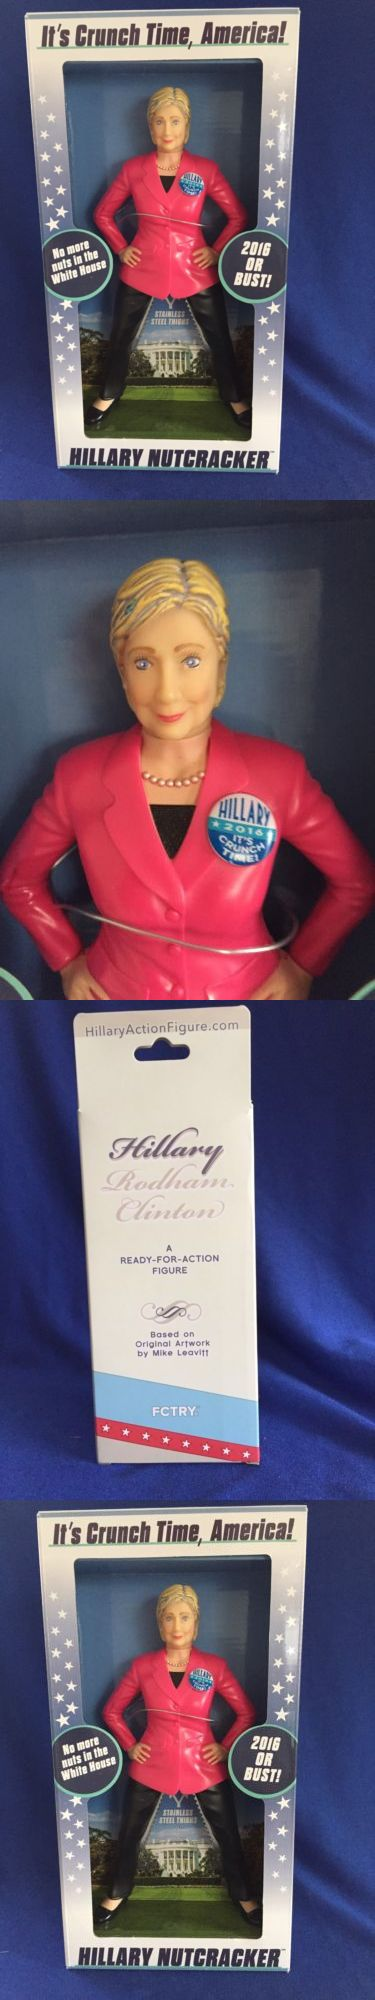 Hillary Clinton: Hillary Clinton Nutcracker 2016 Presidential Election Candidate - Free Shipping BUY IT NOW ONLY: $22.5